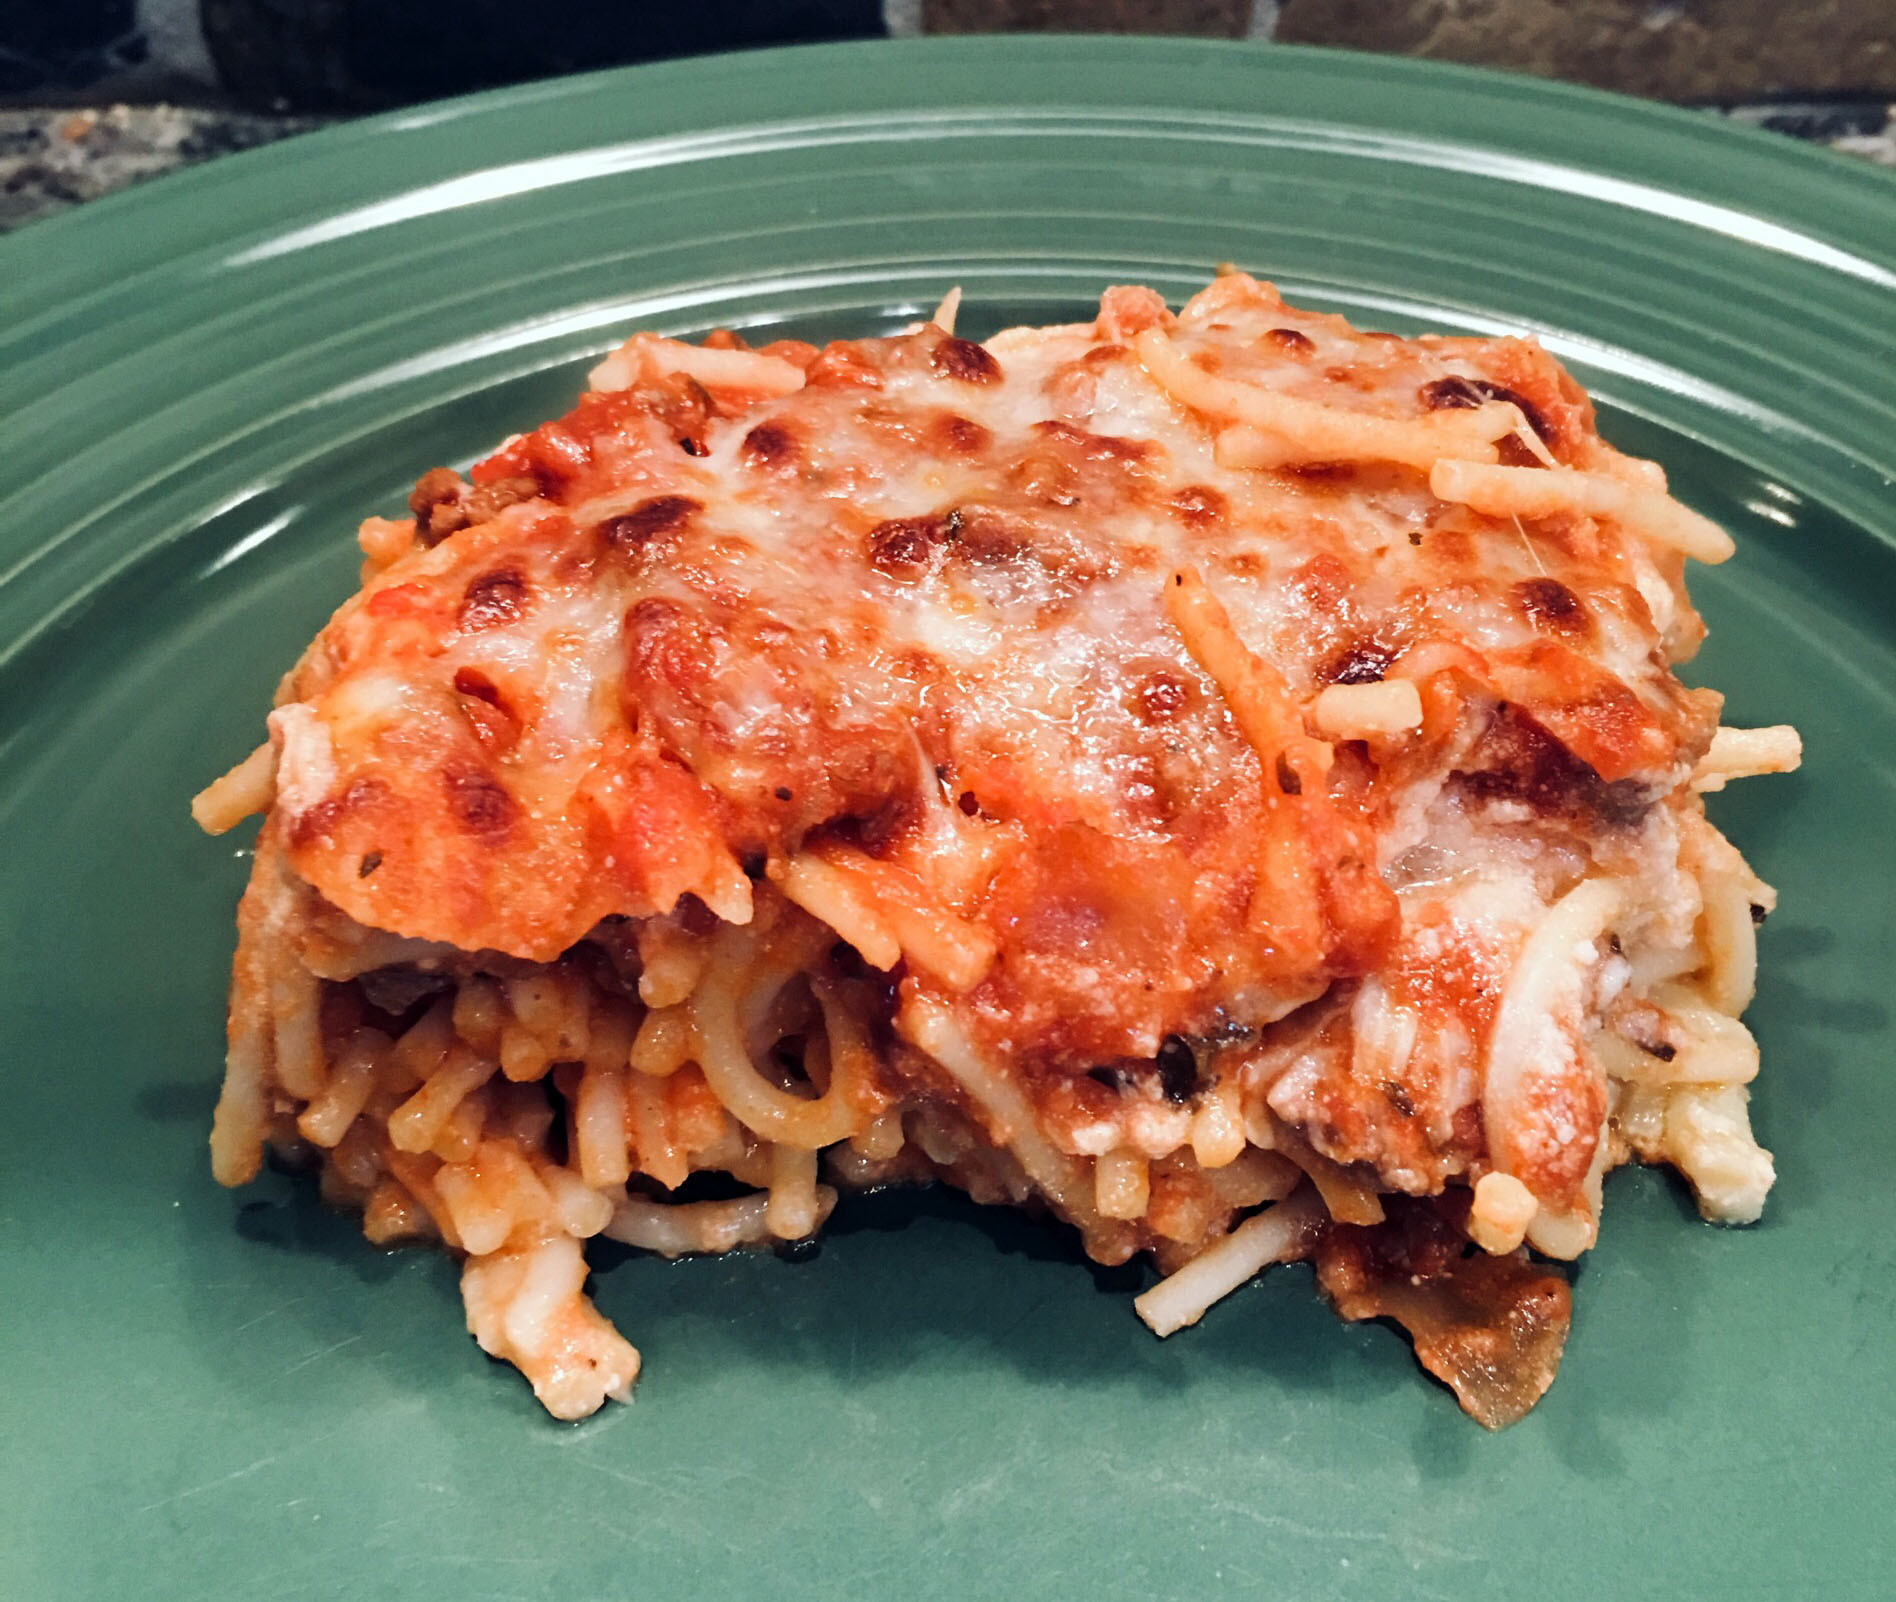 a serving of spaghetti baked with ground beef, 3 cheeses, and a tomato-based sauce on a green plate